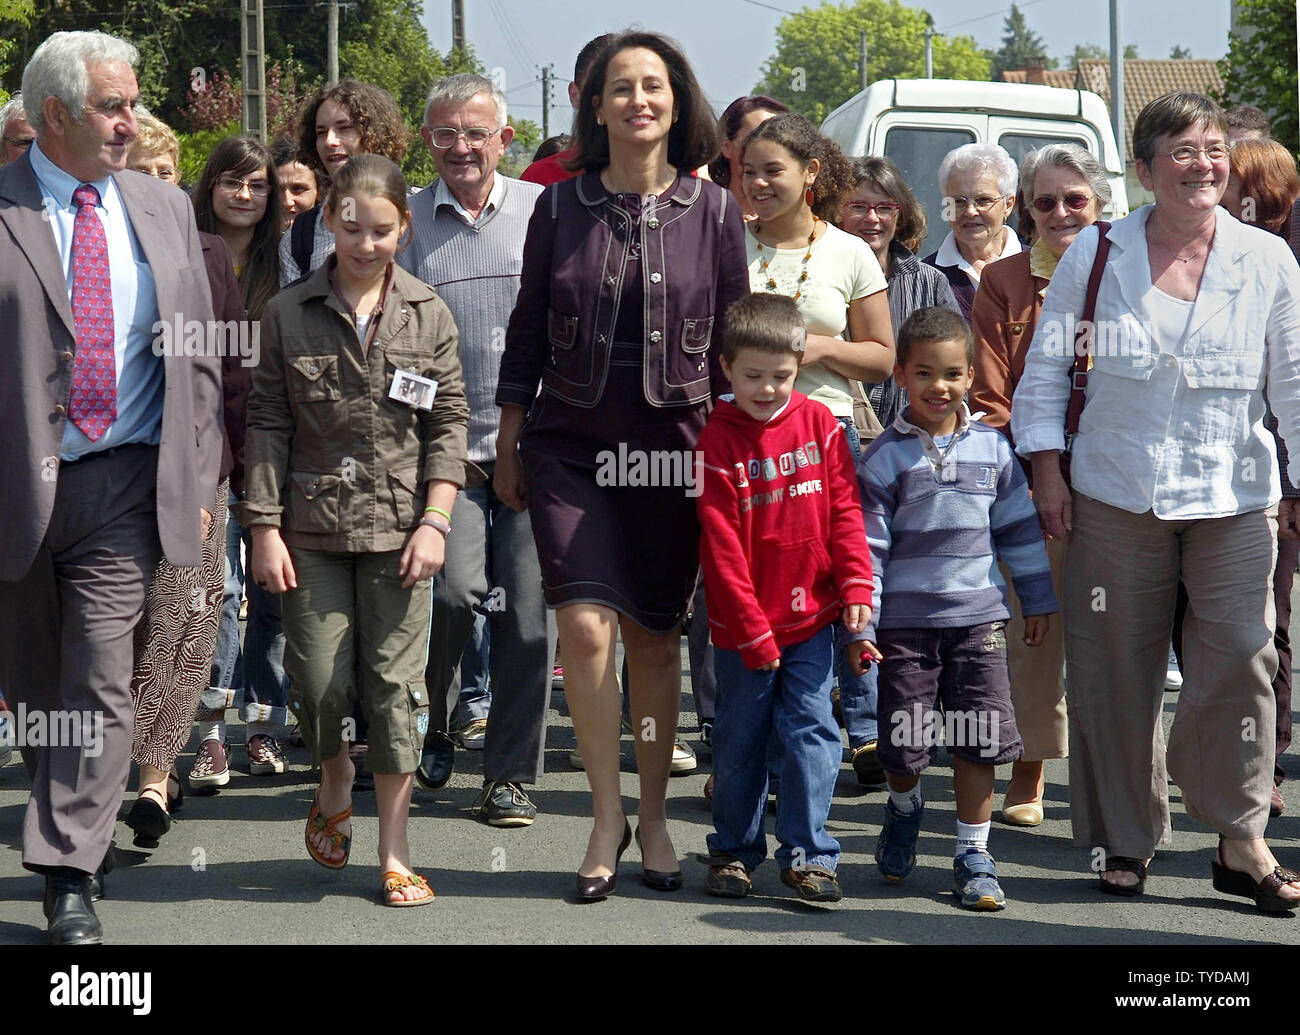 Supporters accompany socialist candidate Segolene Royal to her polling station in Melle, southwestern France, on election day May 5, 2007. French citizens are voting for their next president today, with governing-party nominee Nicolas Sarkozy leading in opinion polls and Royal warning of 'violence'' if she loses.    (UPI Photo/Khanh Renaud) - Stock Image